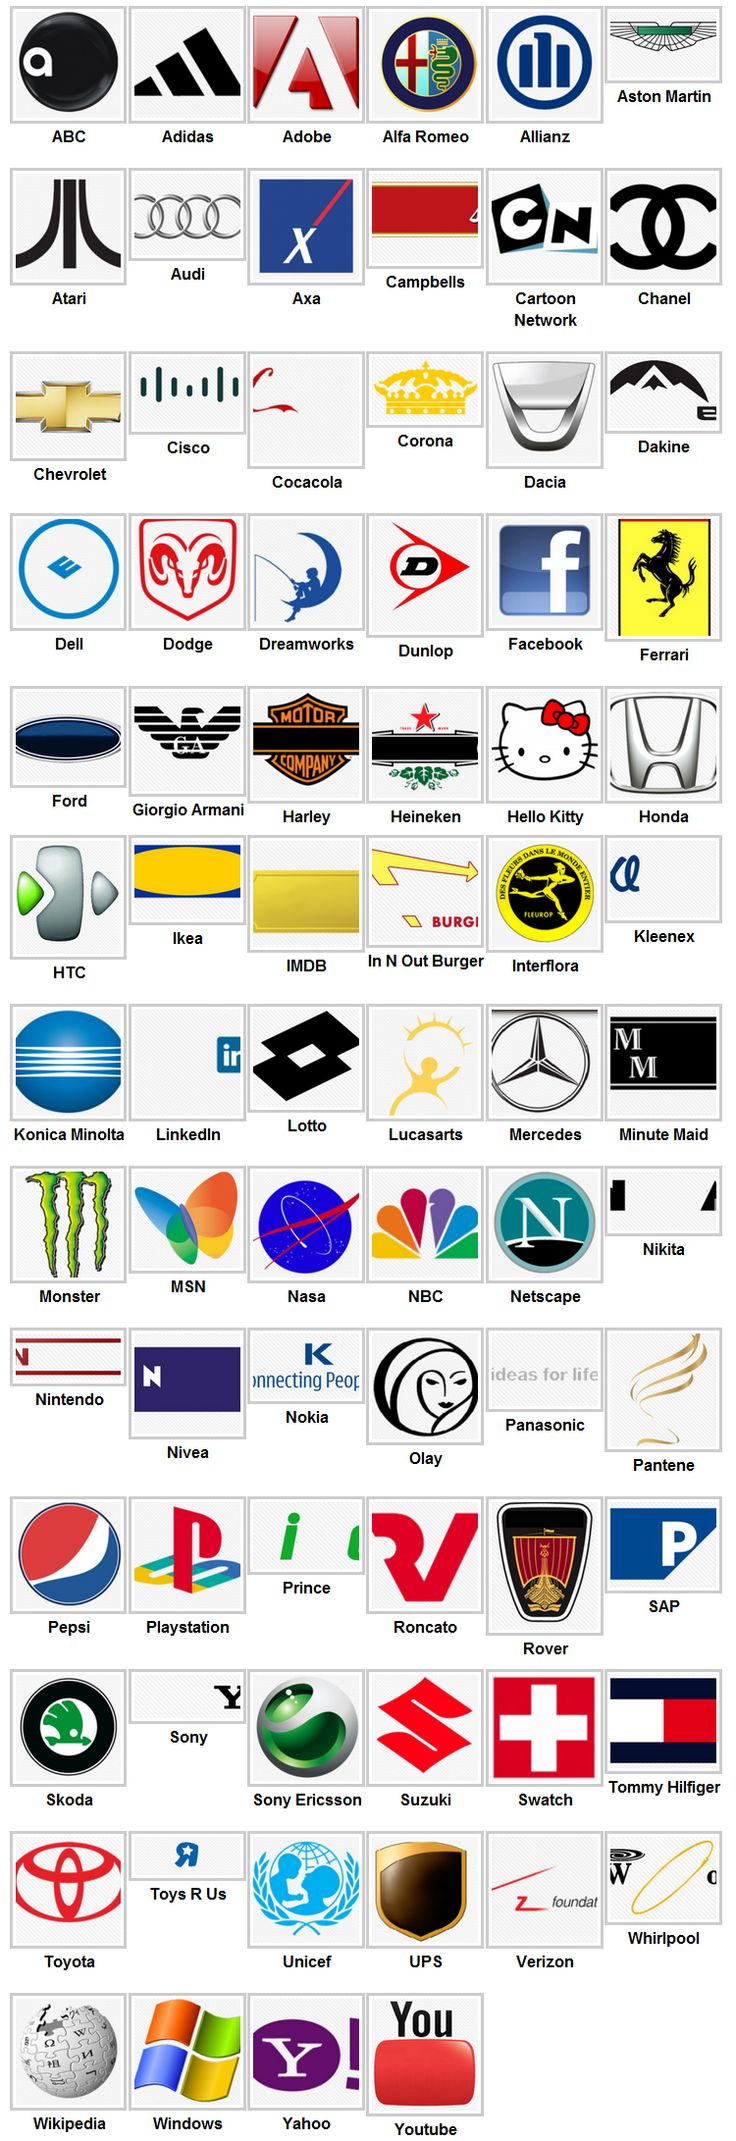 drink logos and names - Google Search